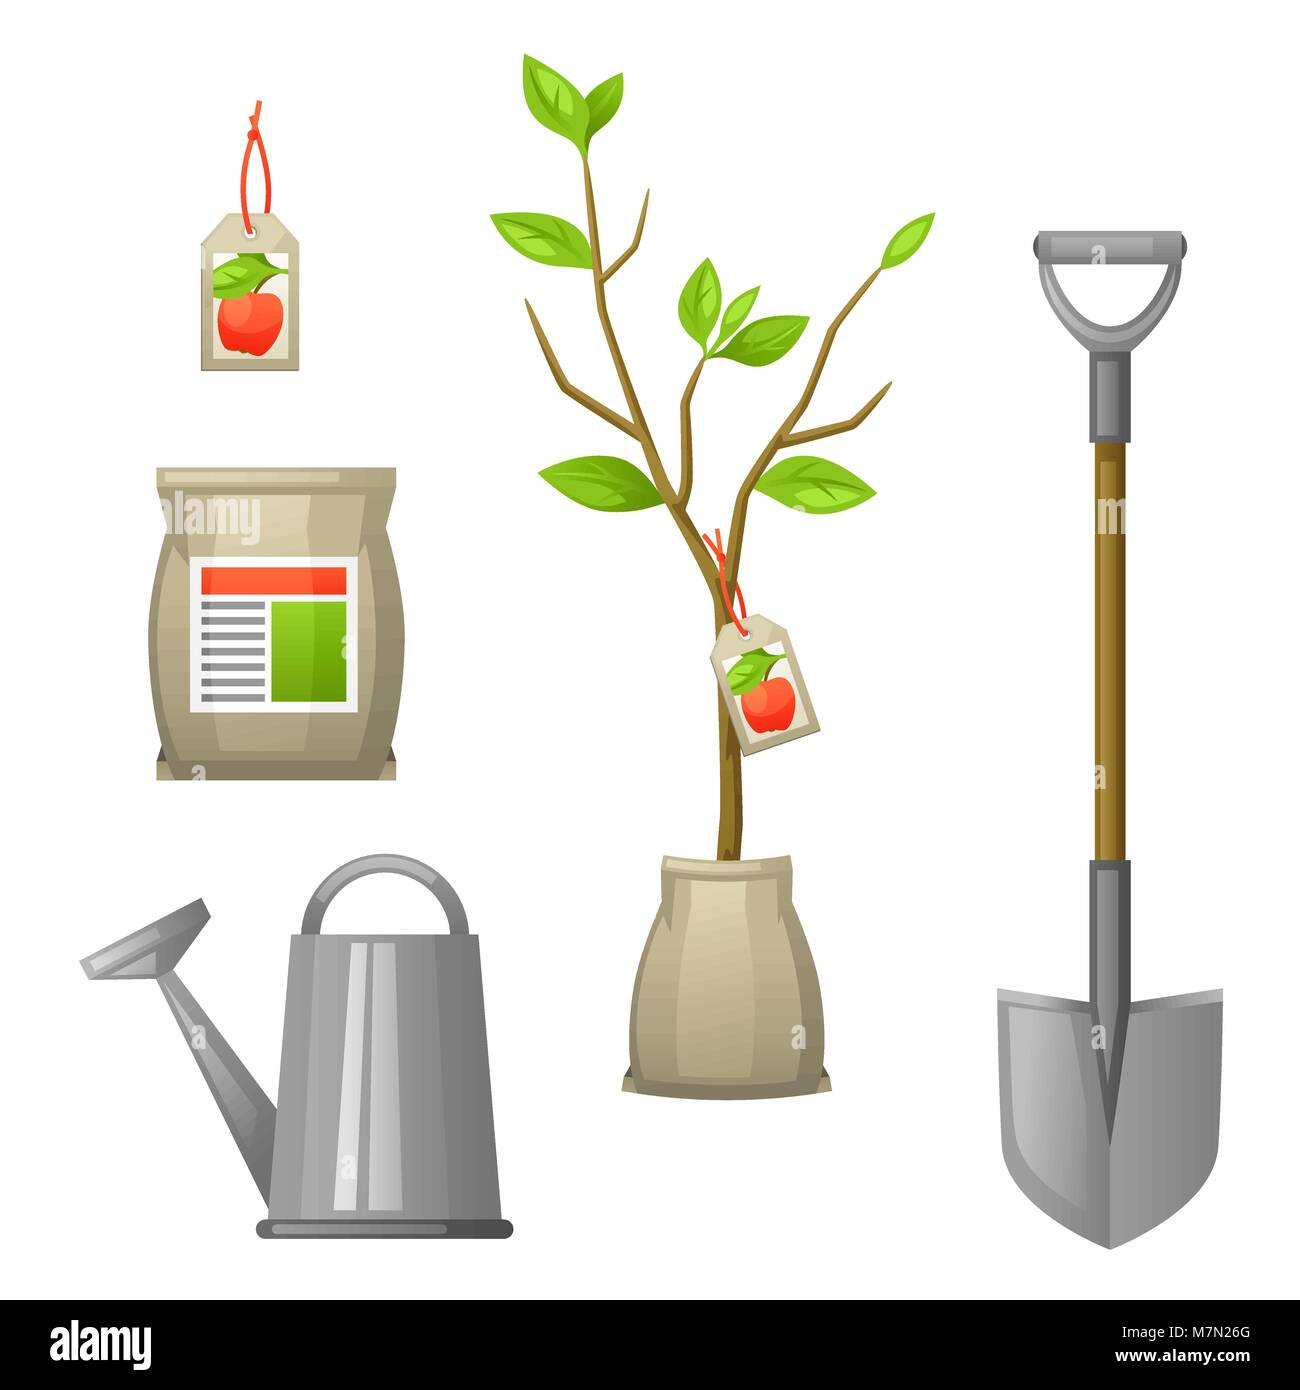 Set of seedling fruit tree,shovel, fertilizers and watering can. Illustration for agricultural booklets, flyers - Stock Vector